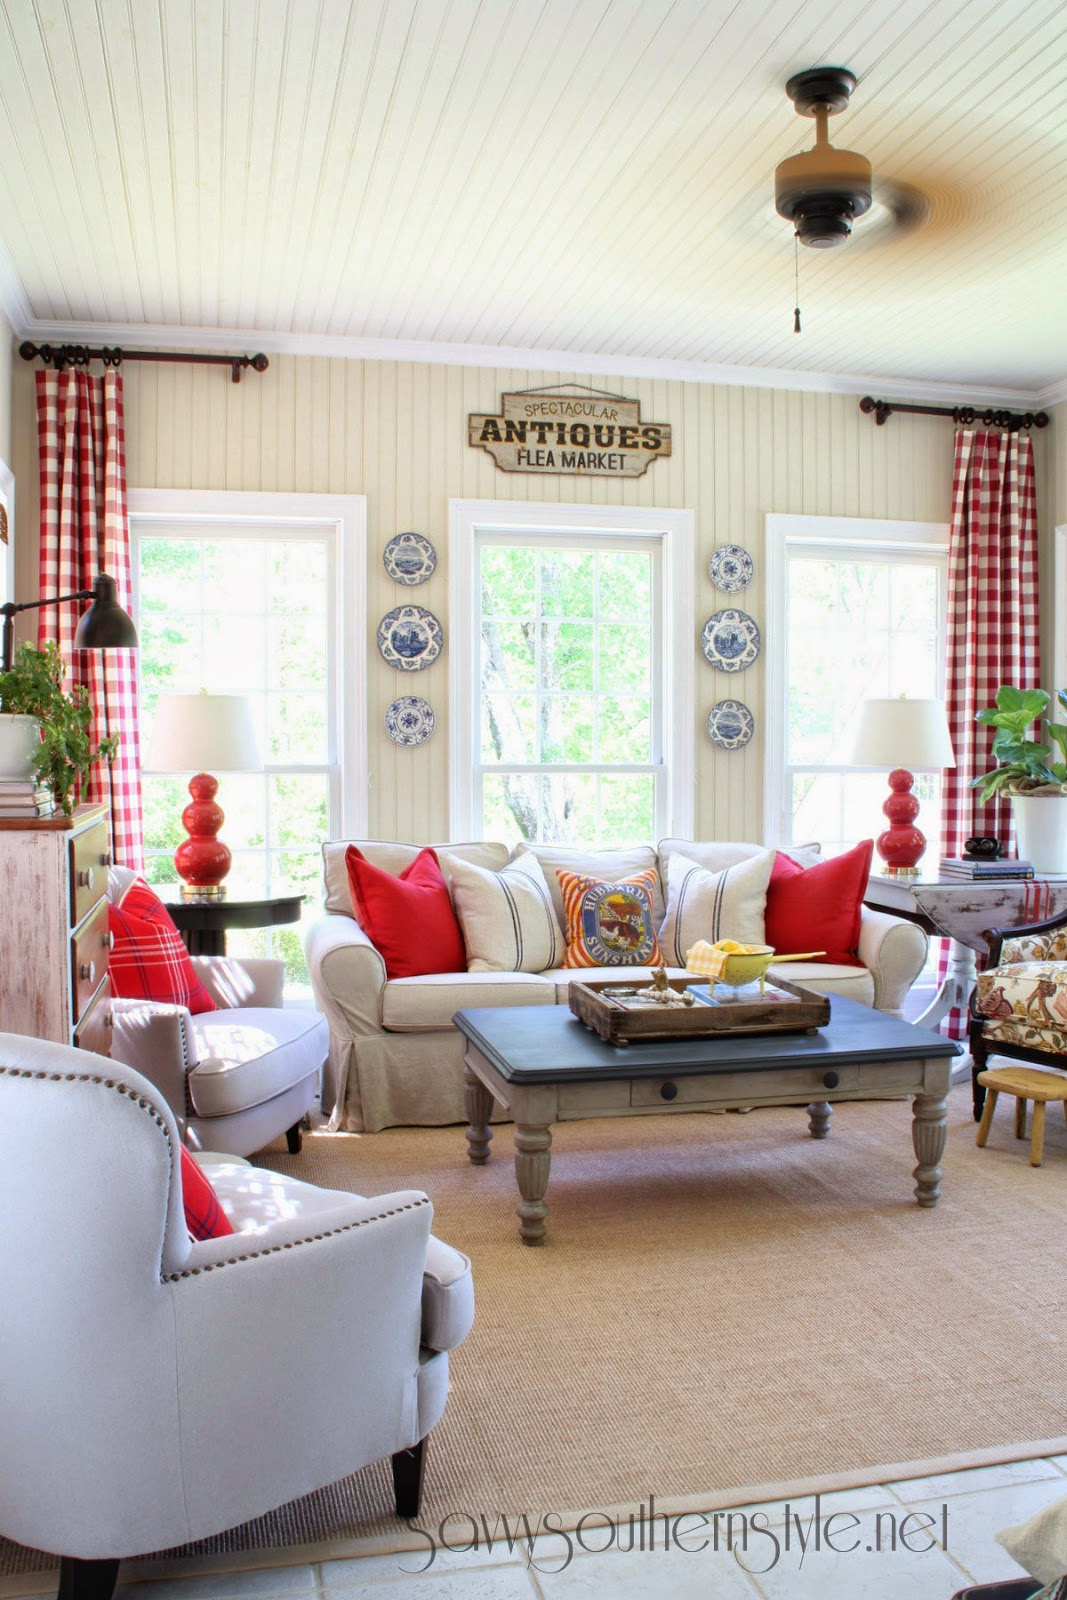 5 My Sun Room Is Favorite In Home Among Others And Any Time I Post About It Becomes A New Of Mine This The Latest Look